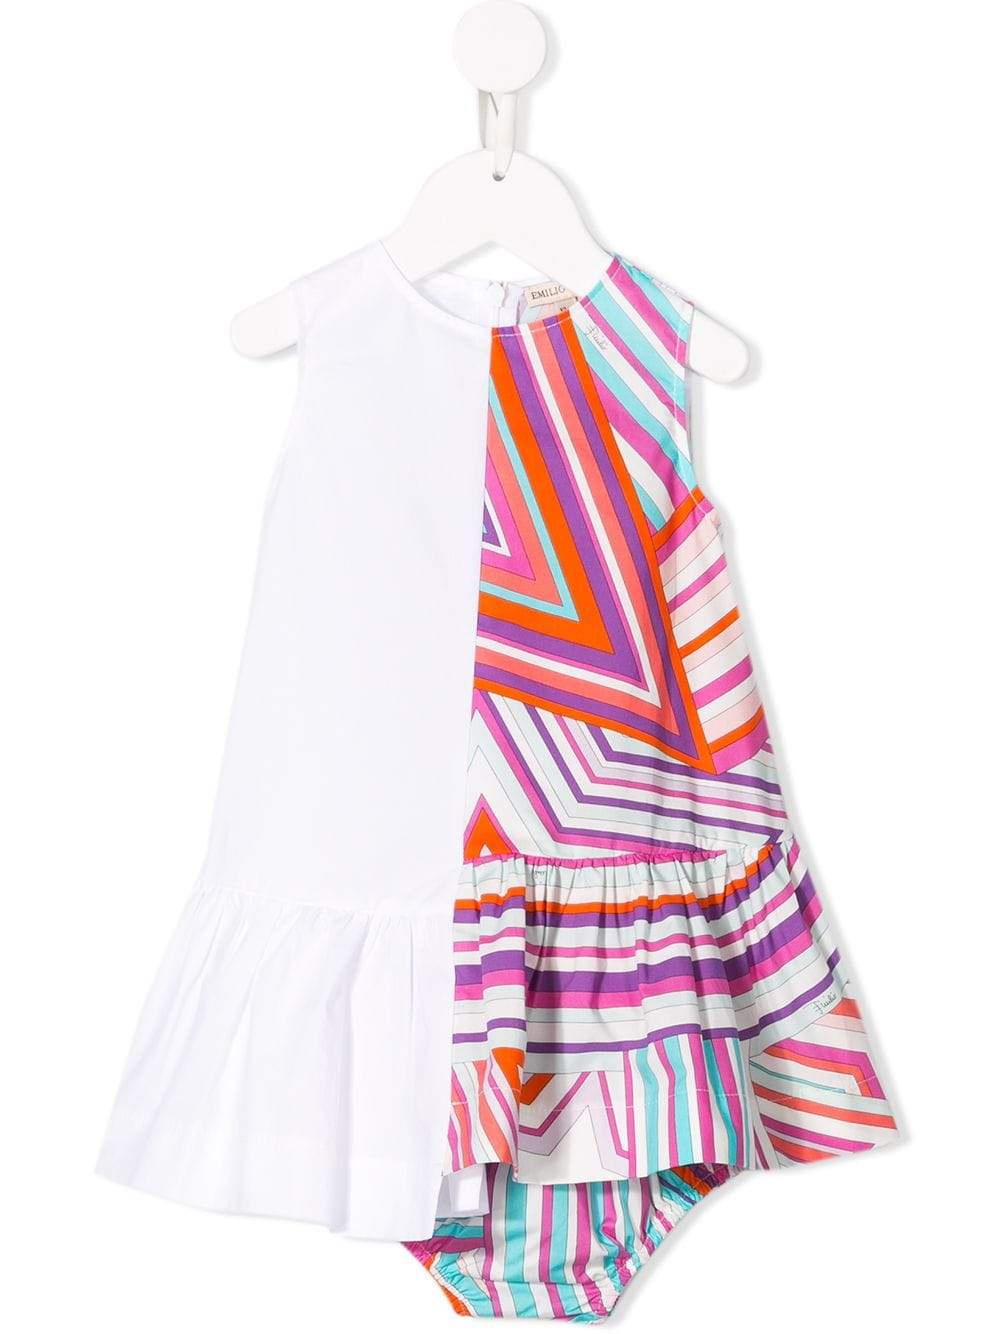 Emilio Pucci Junior BABY GIRLS COTTON DRESS WITH KNICKERS | Maison De Fashion